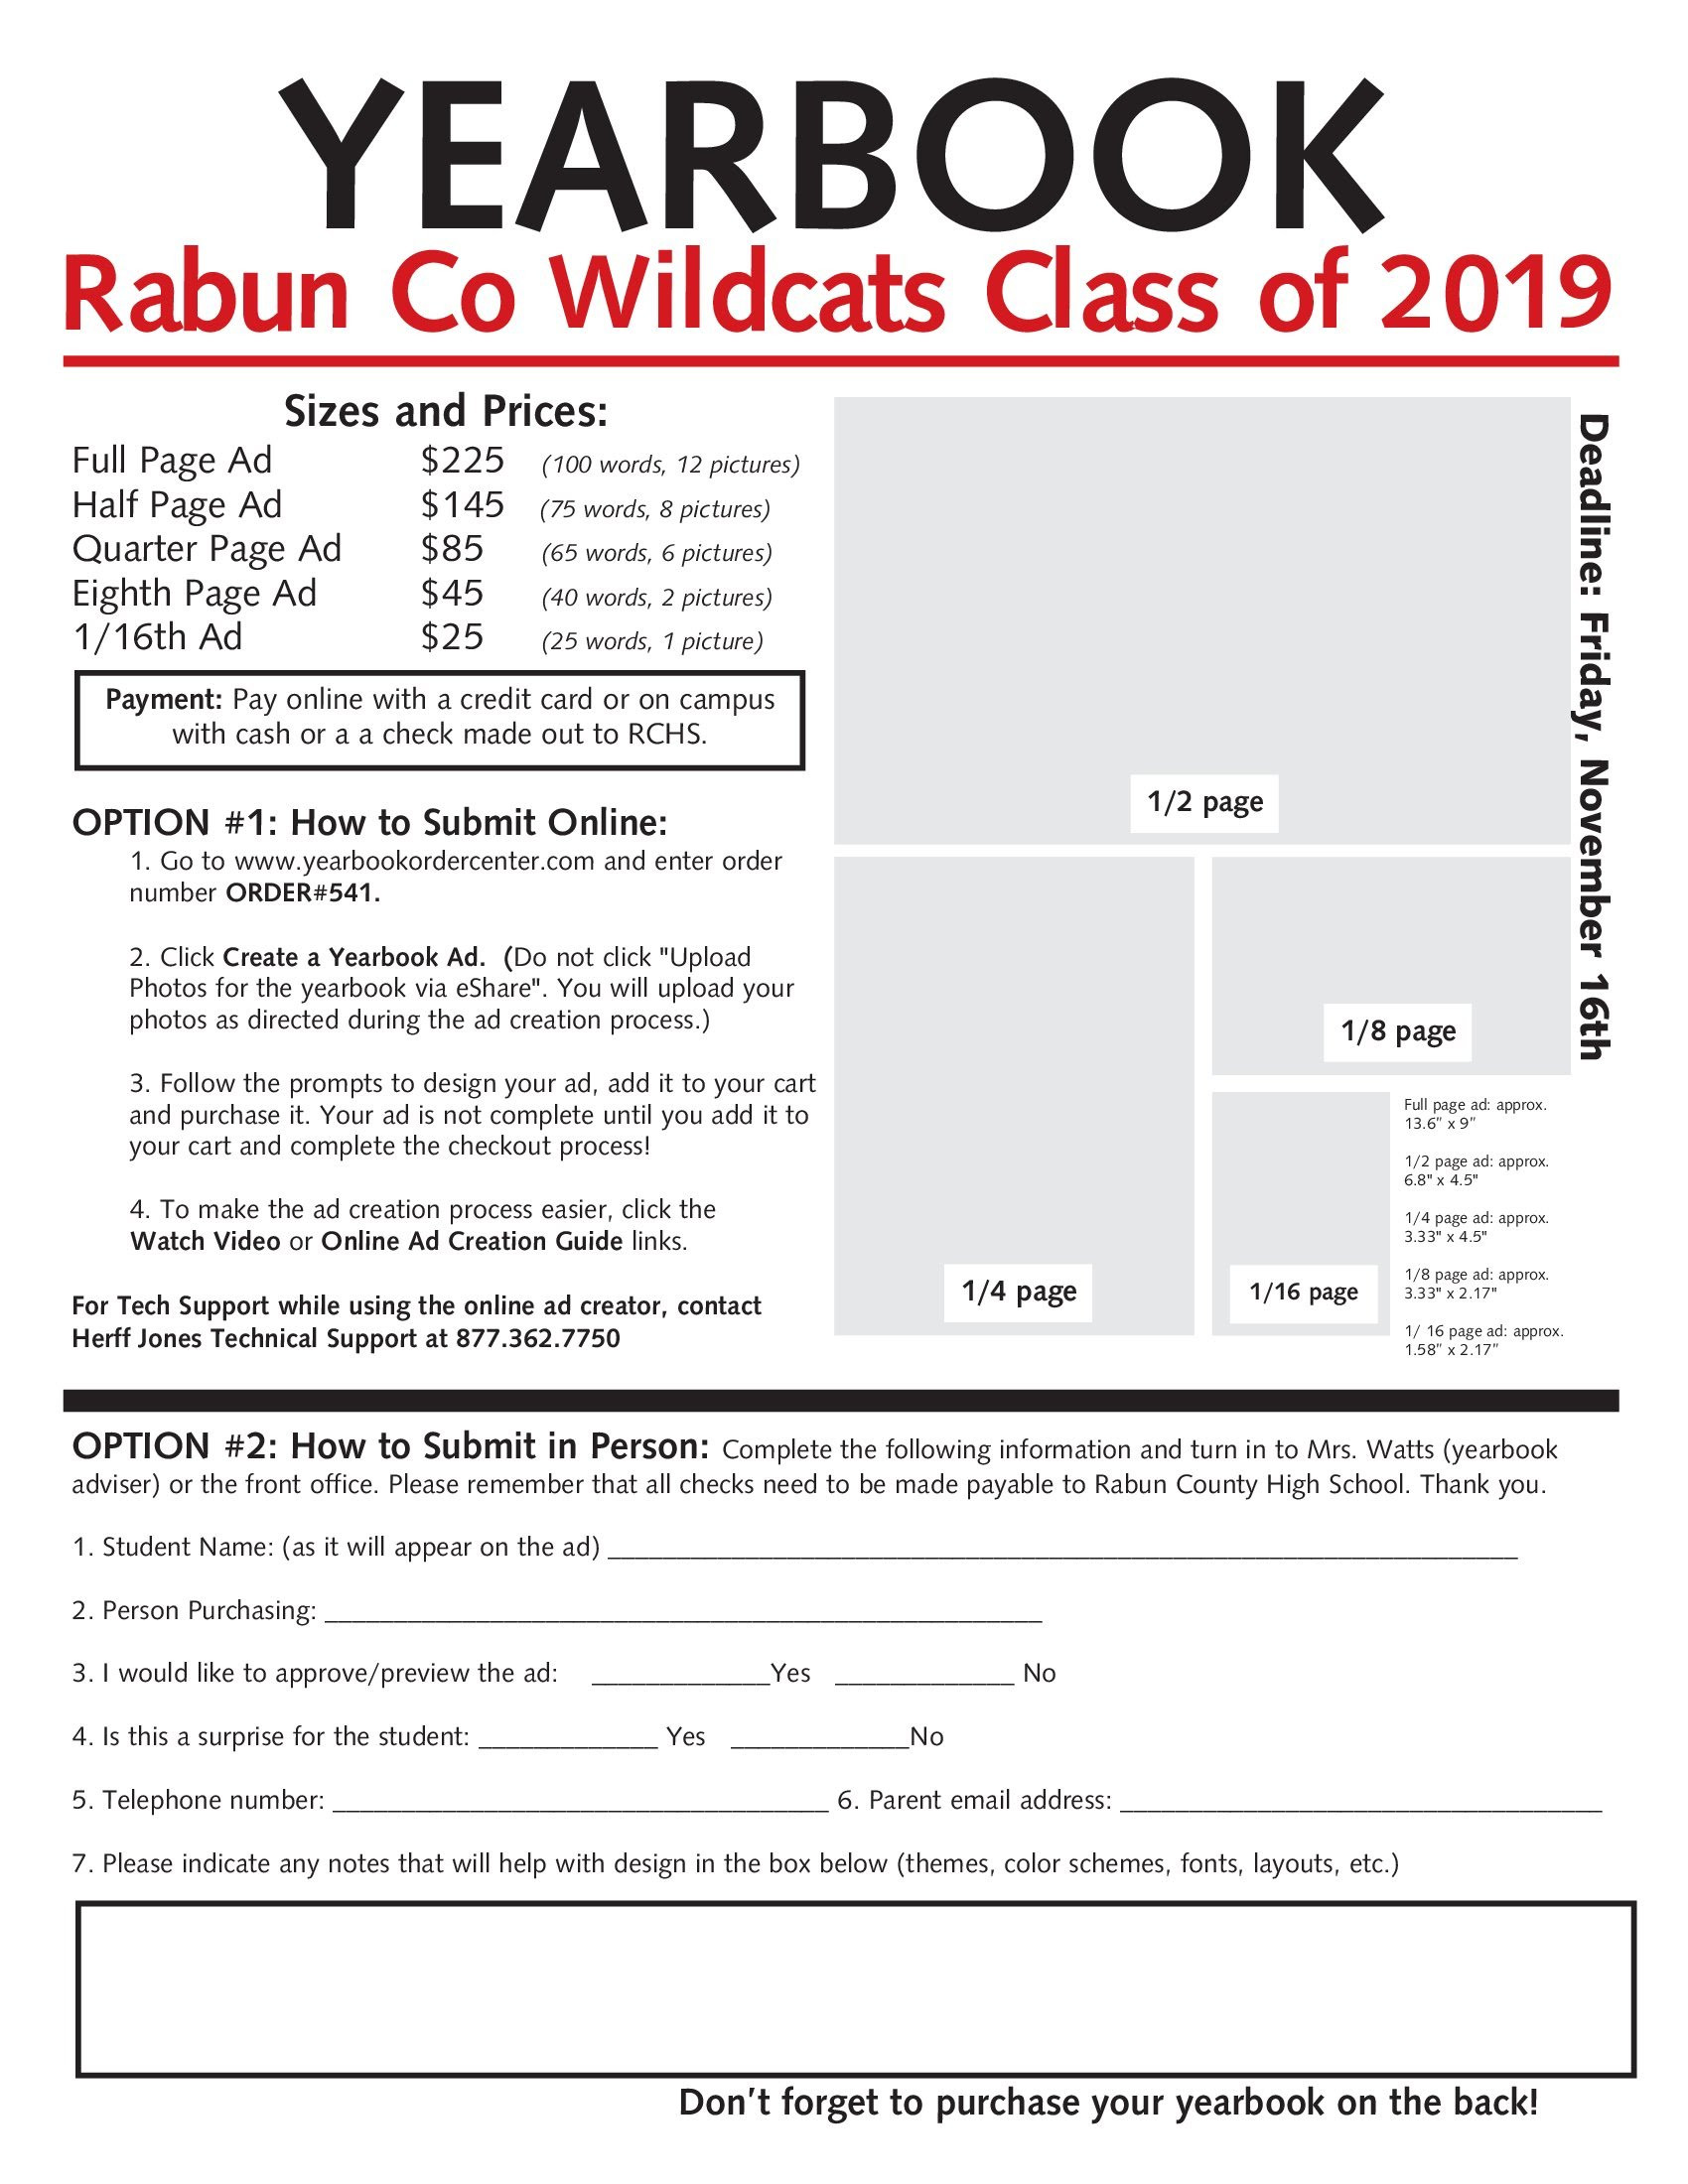 Yearbook order form Template